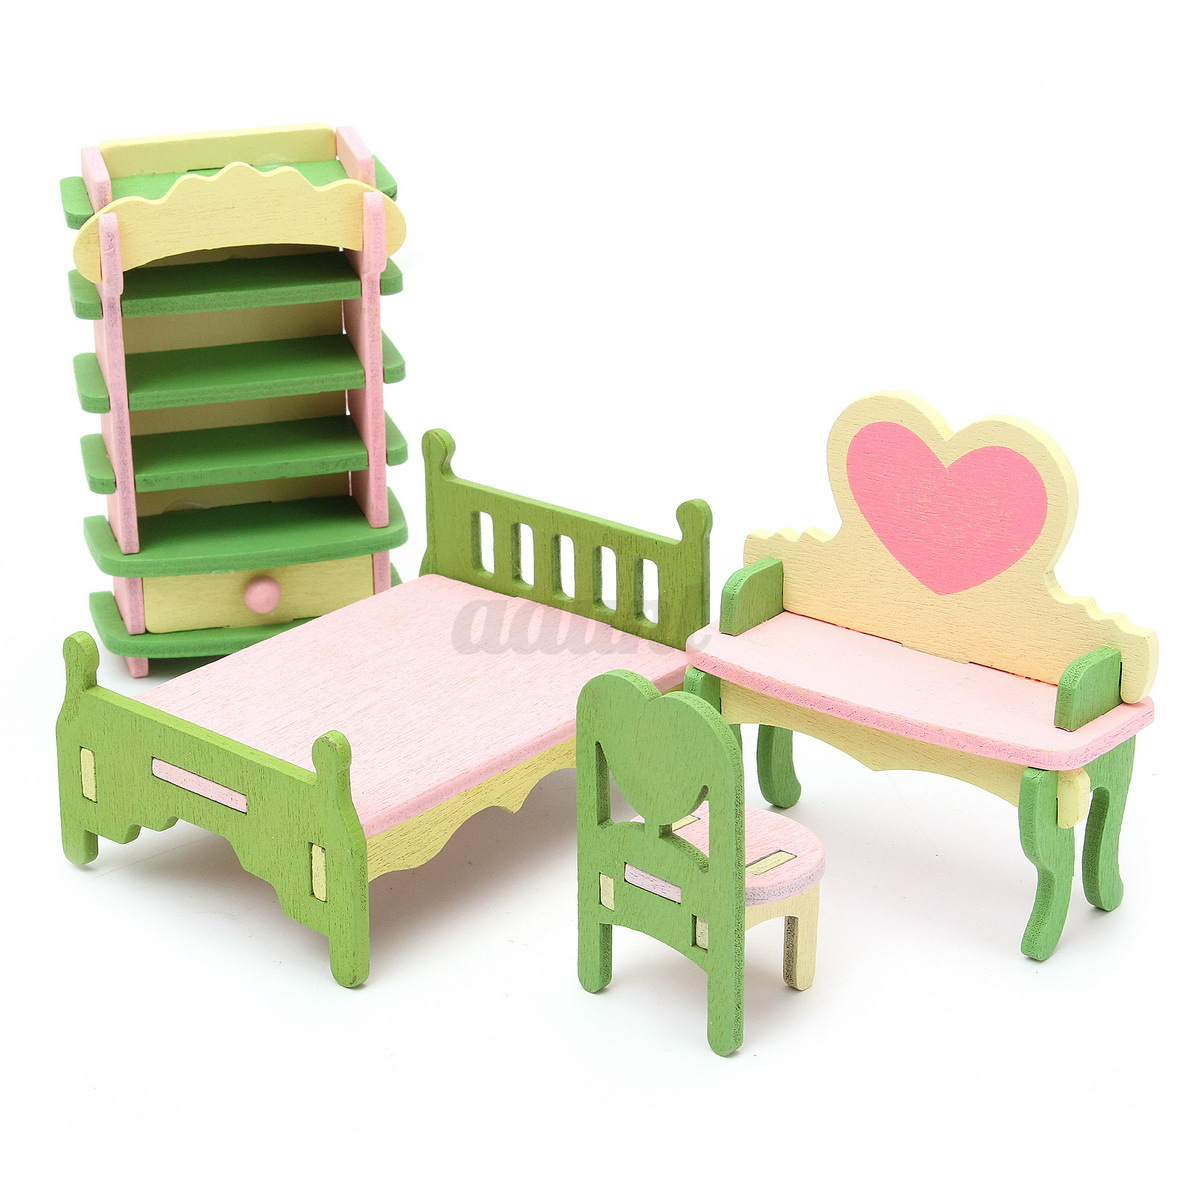 Wooden furniture dolls house family miniature room set child kids gift toy new ebay Dolls wooden furniture